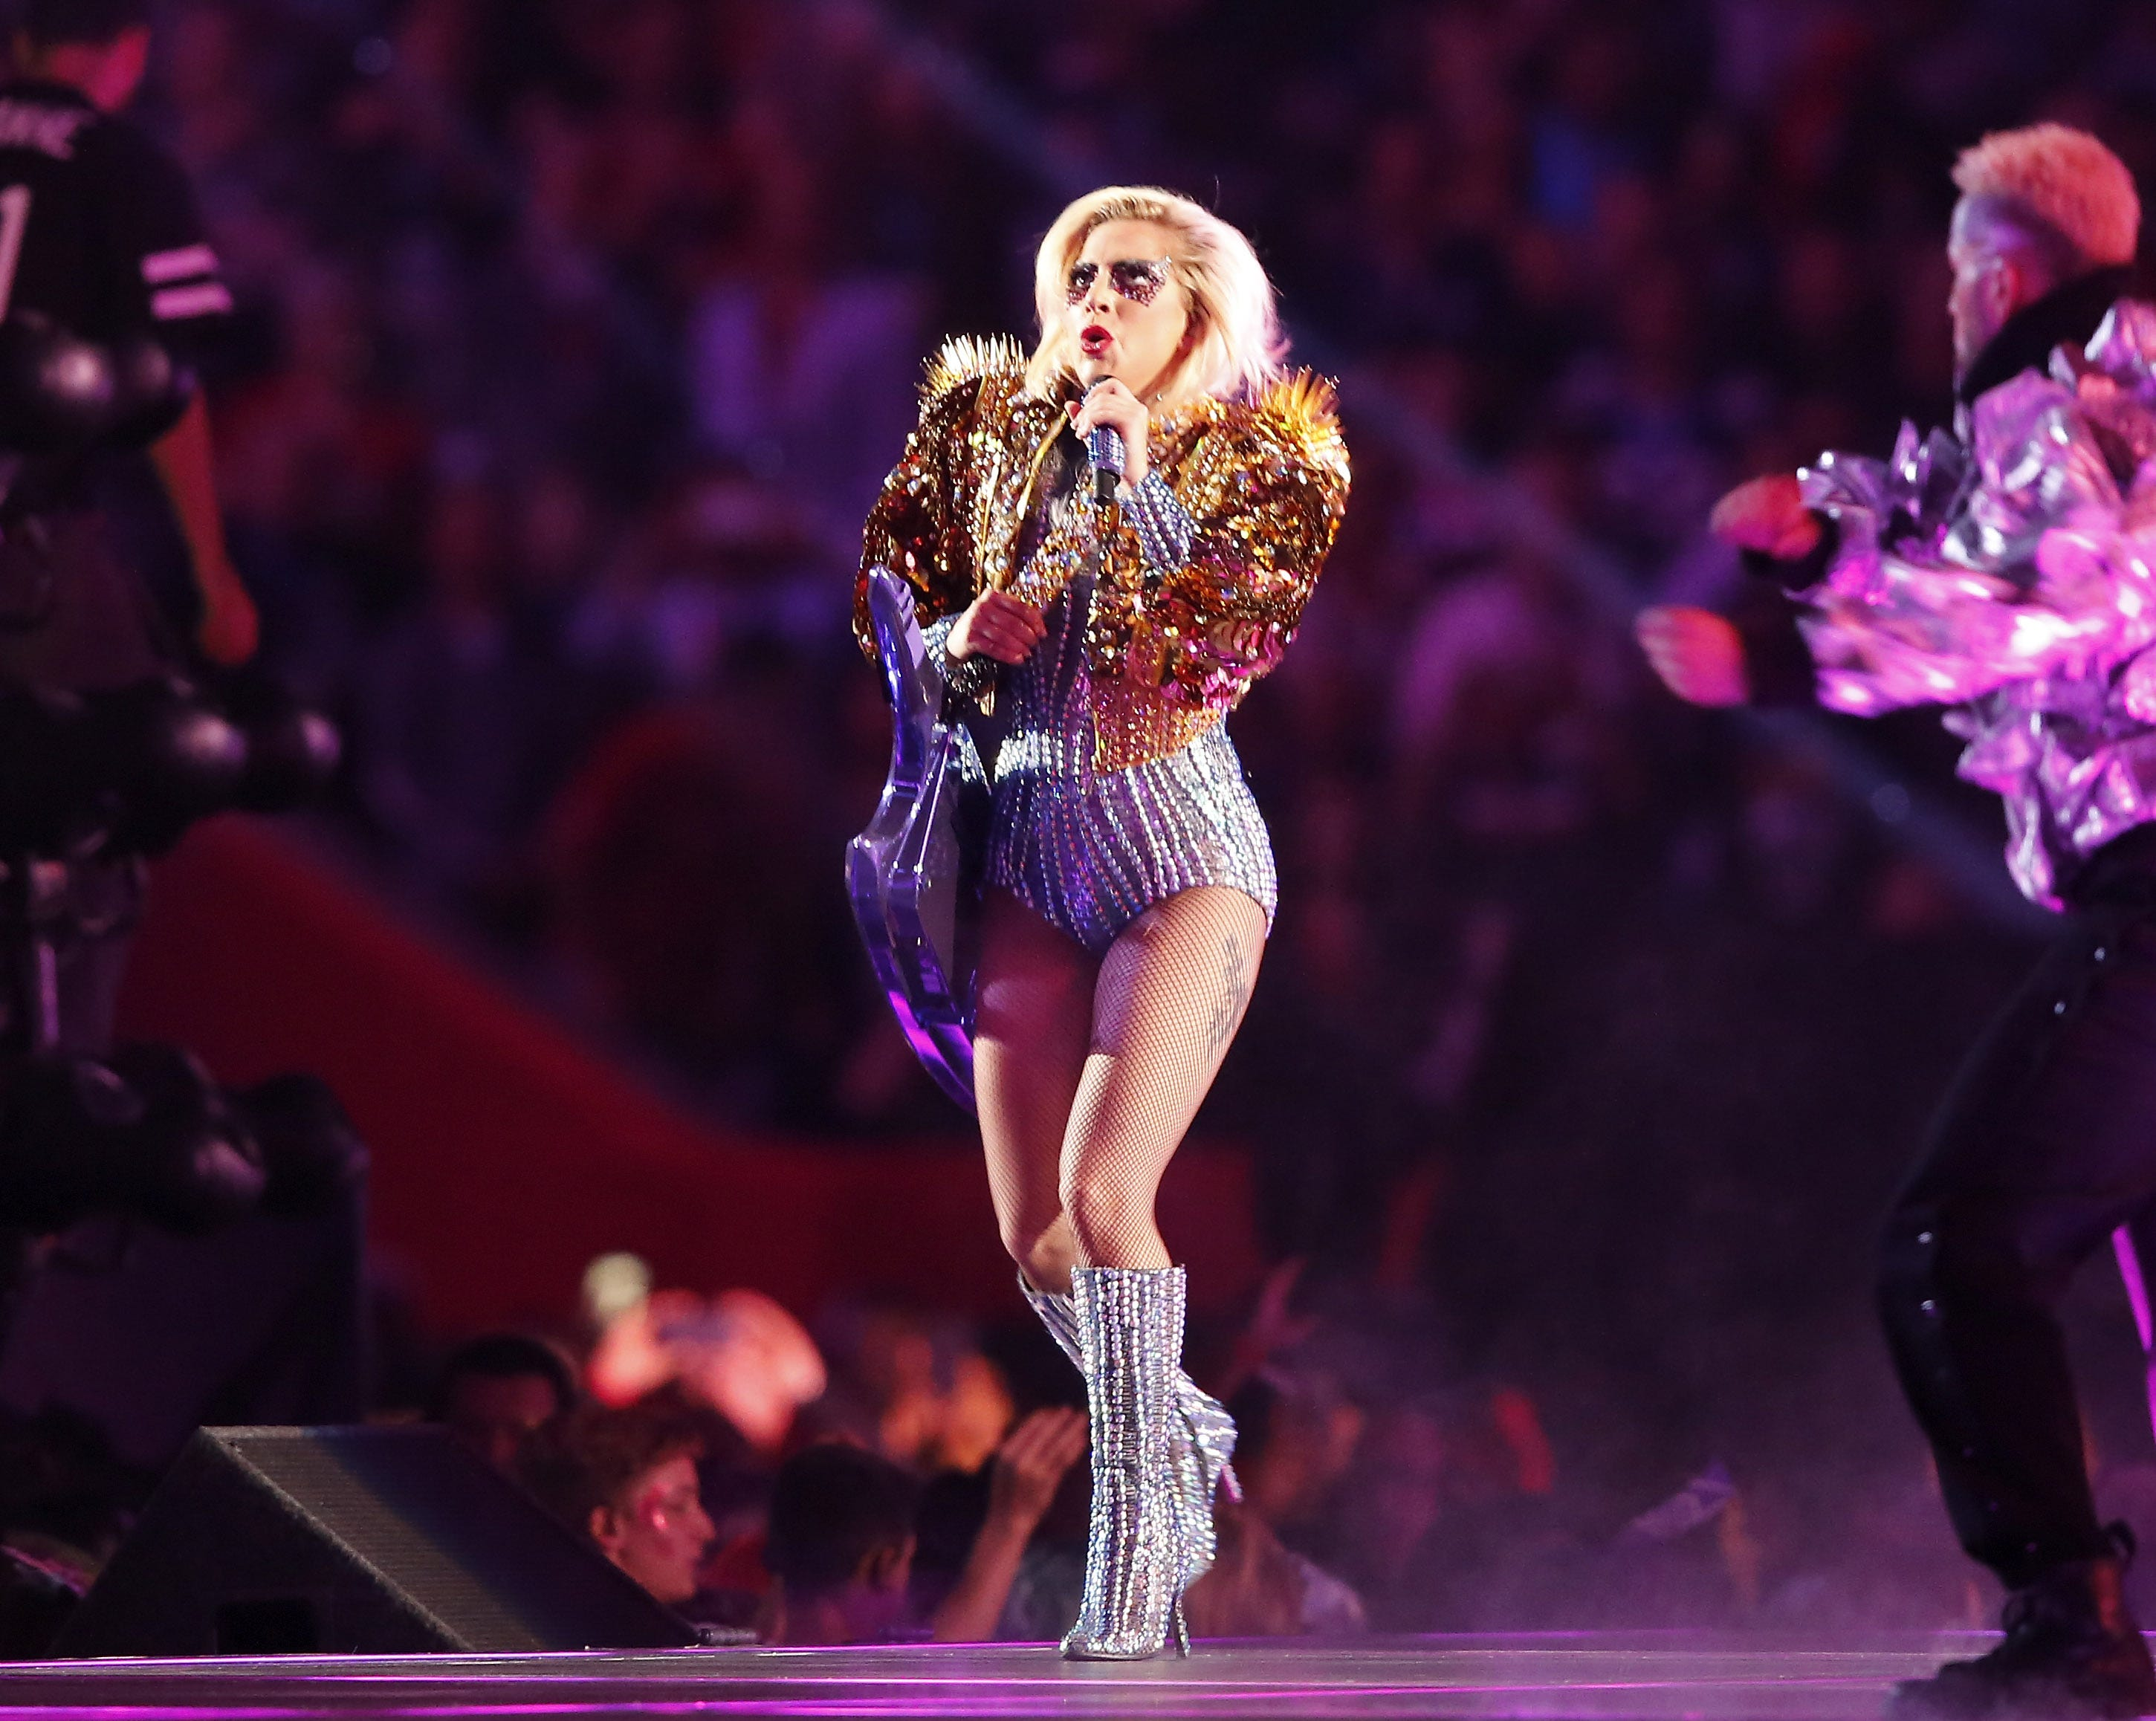 Gaga's Makeup Cost Almost As Much As A Super Bowl Ticket